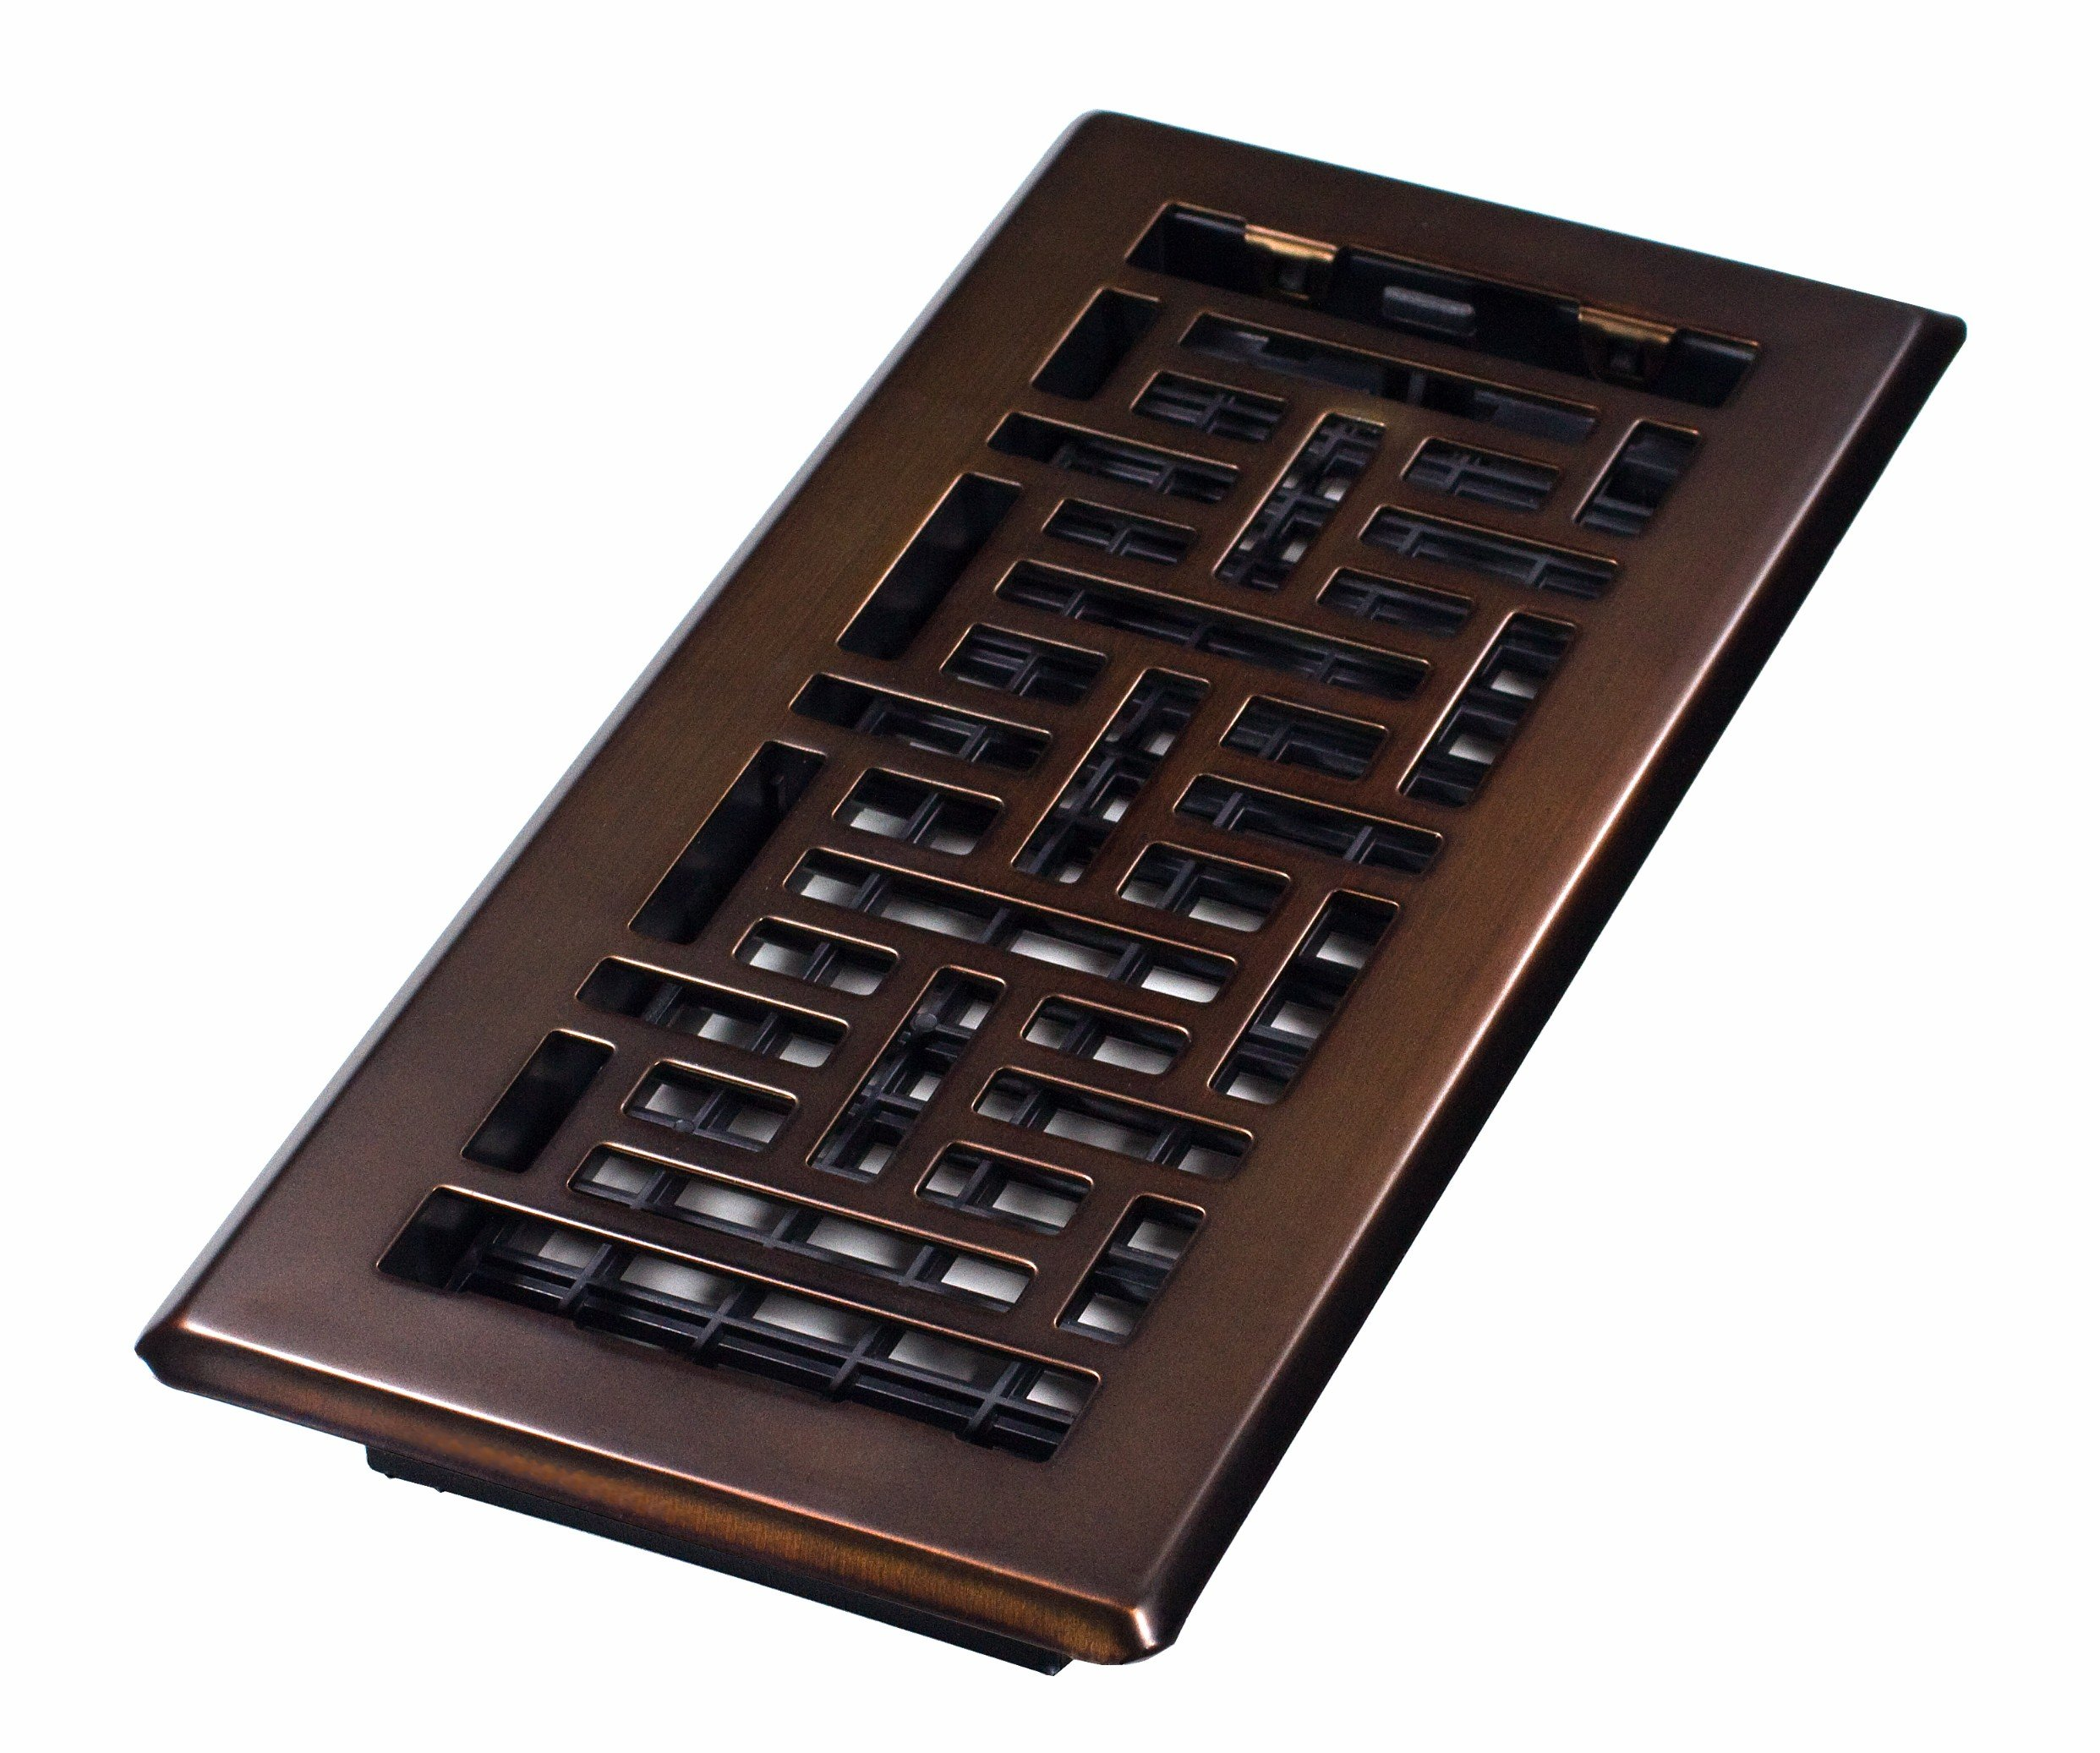 Decor Grates AJH410-RB Oriental Floor Register, Rubbed Bronze, 4-Inch by 10-Inch by Decor Grates